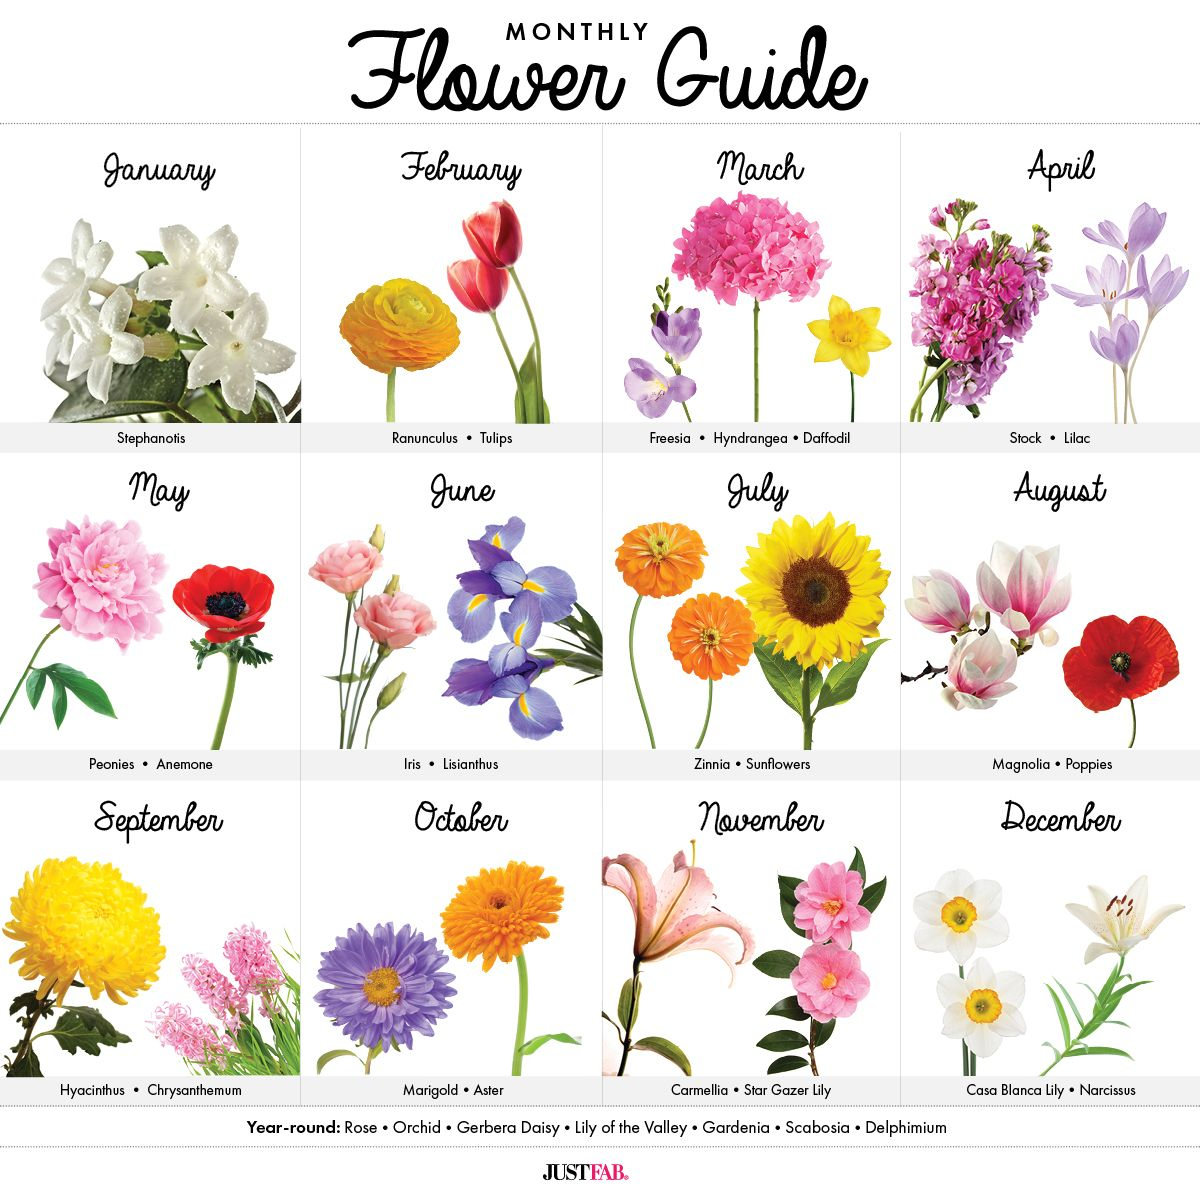 a visual guide to wedding flowers by month floral